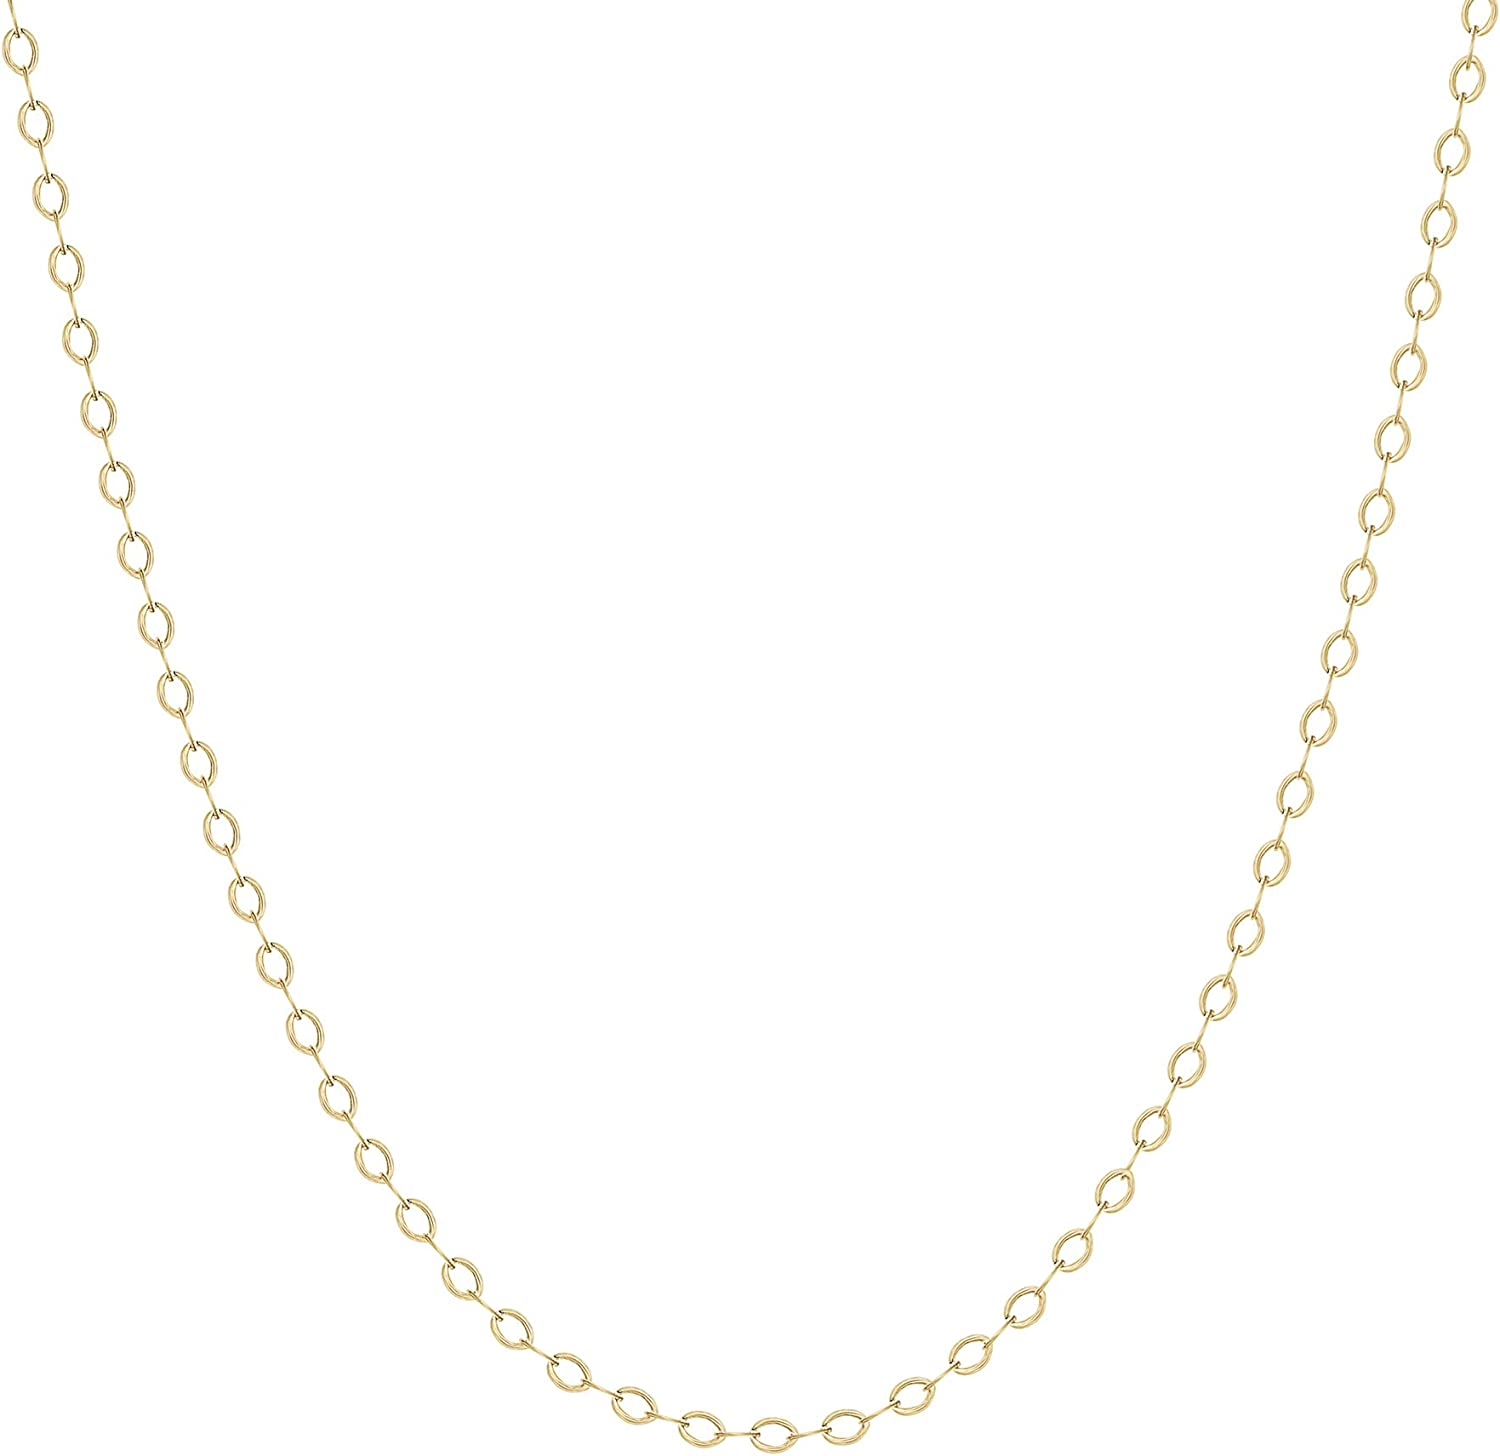 TousiAttar 14k Rose Gold-Filled Flat Cable Chain Necklace Pendant 16-18 Inches 1.3 MM Body Jewelry